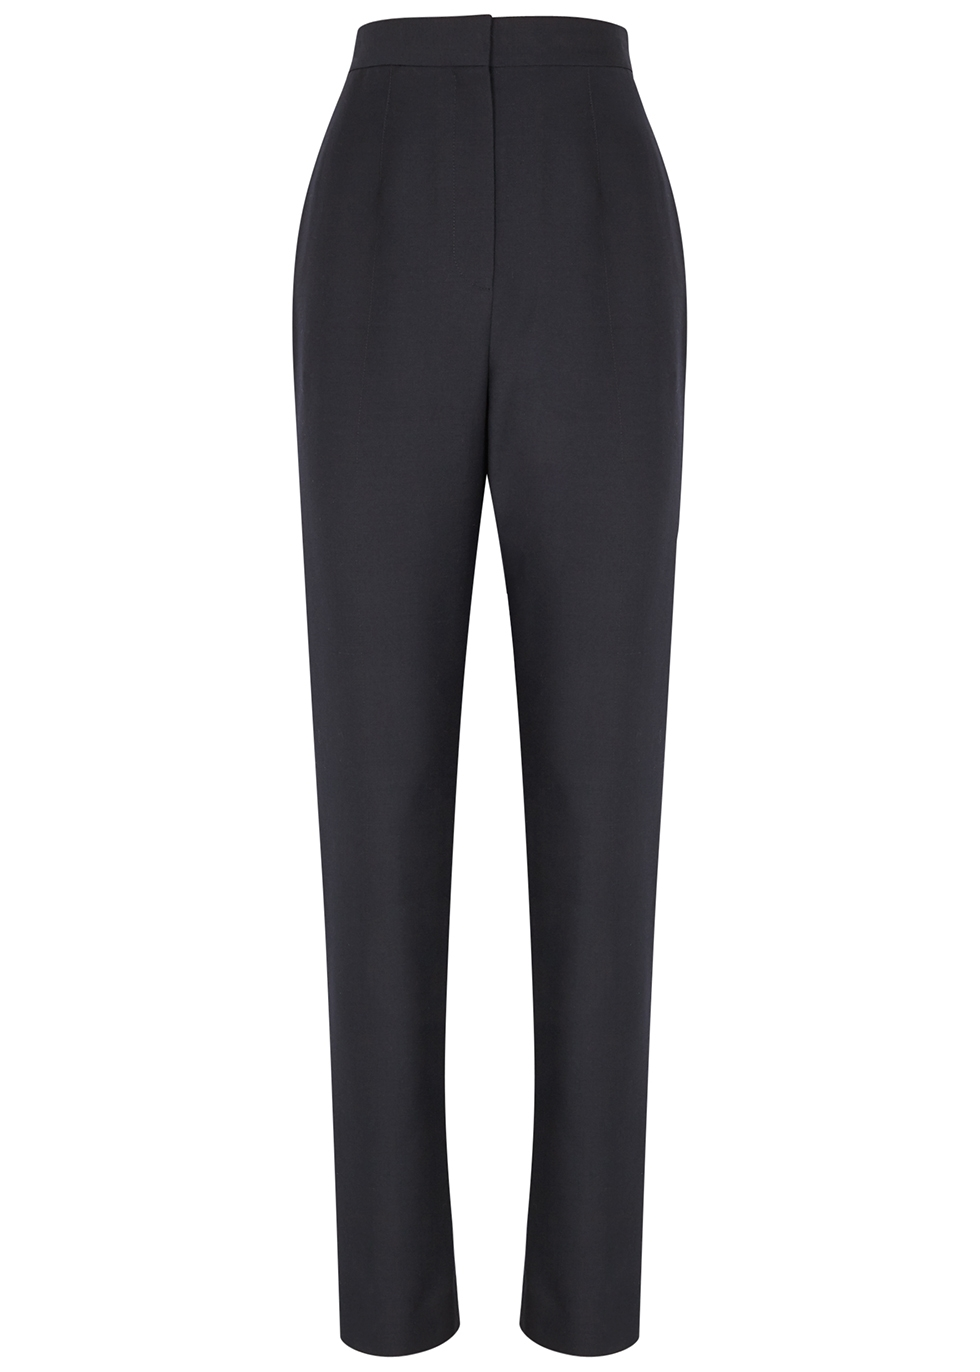 Navy tapered wool trousers